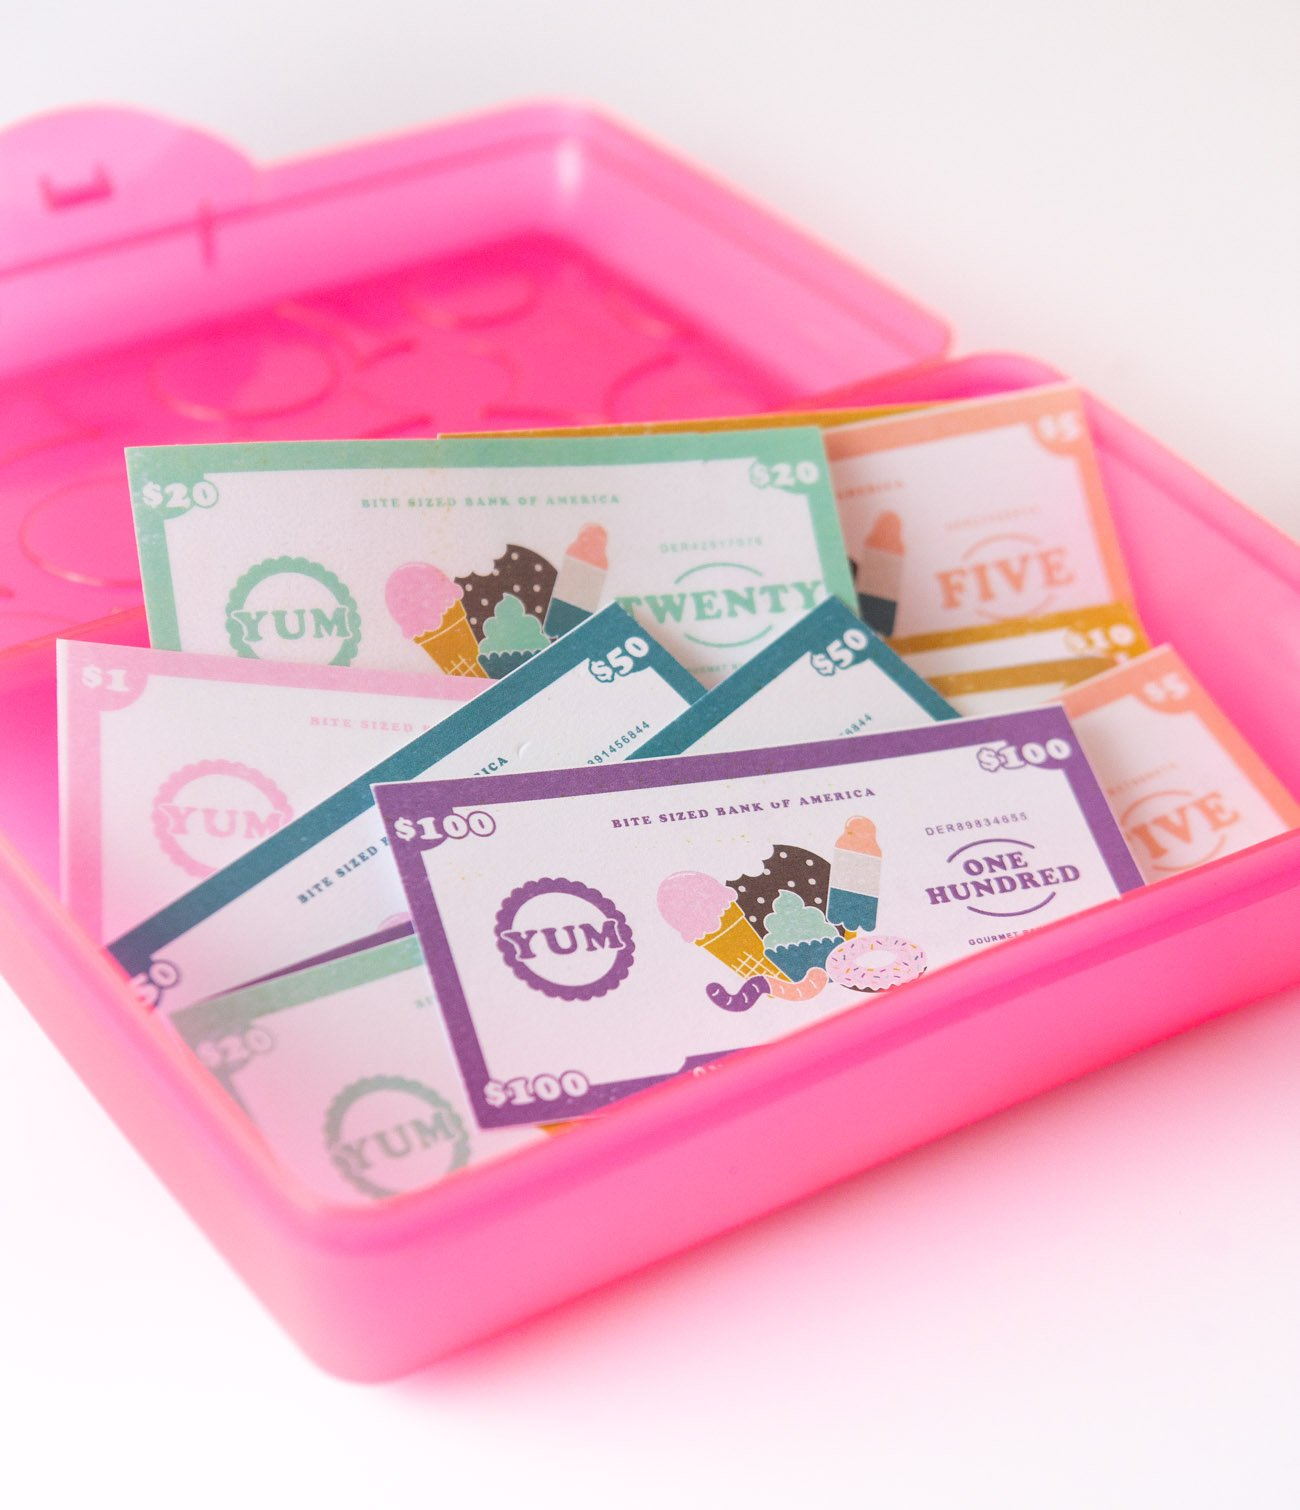 Storage for dessert themed free printable play money for kids, $1, $5, $10, $20, $50, $100